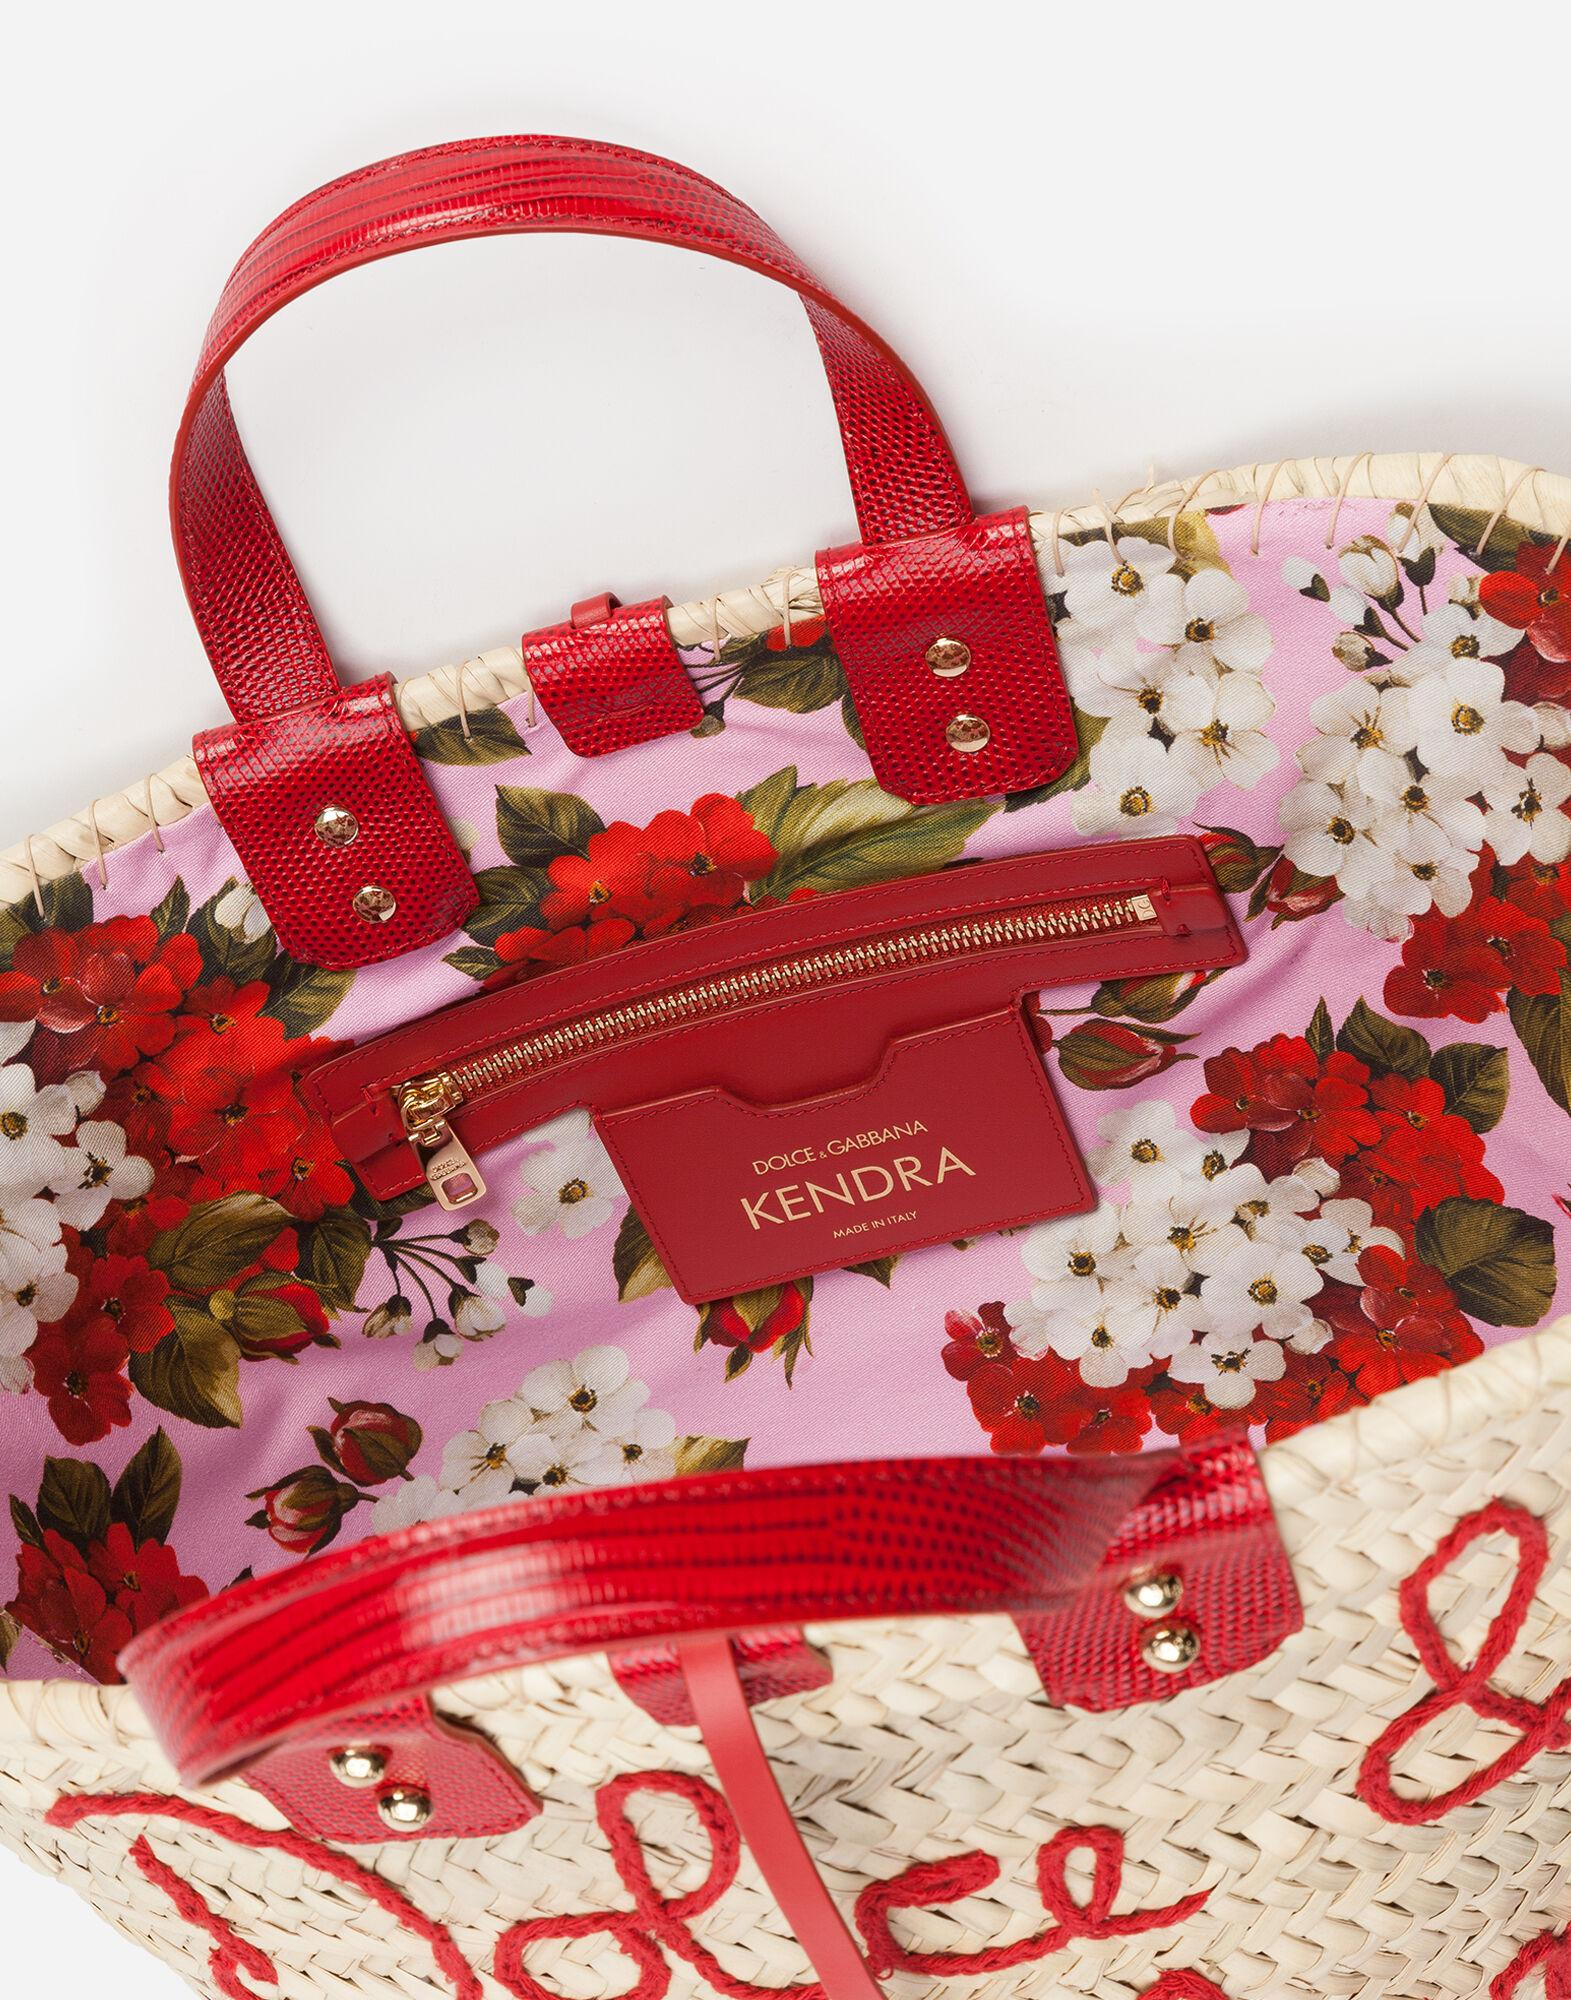 Kendra coffa bag in straw with thread embroidery 3